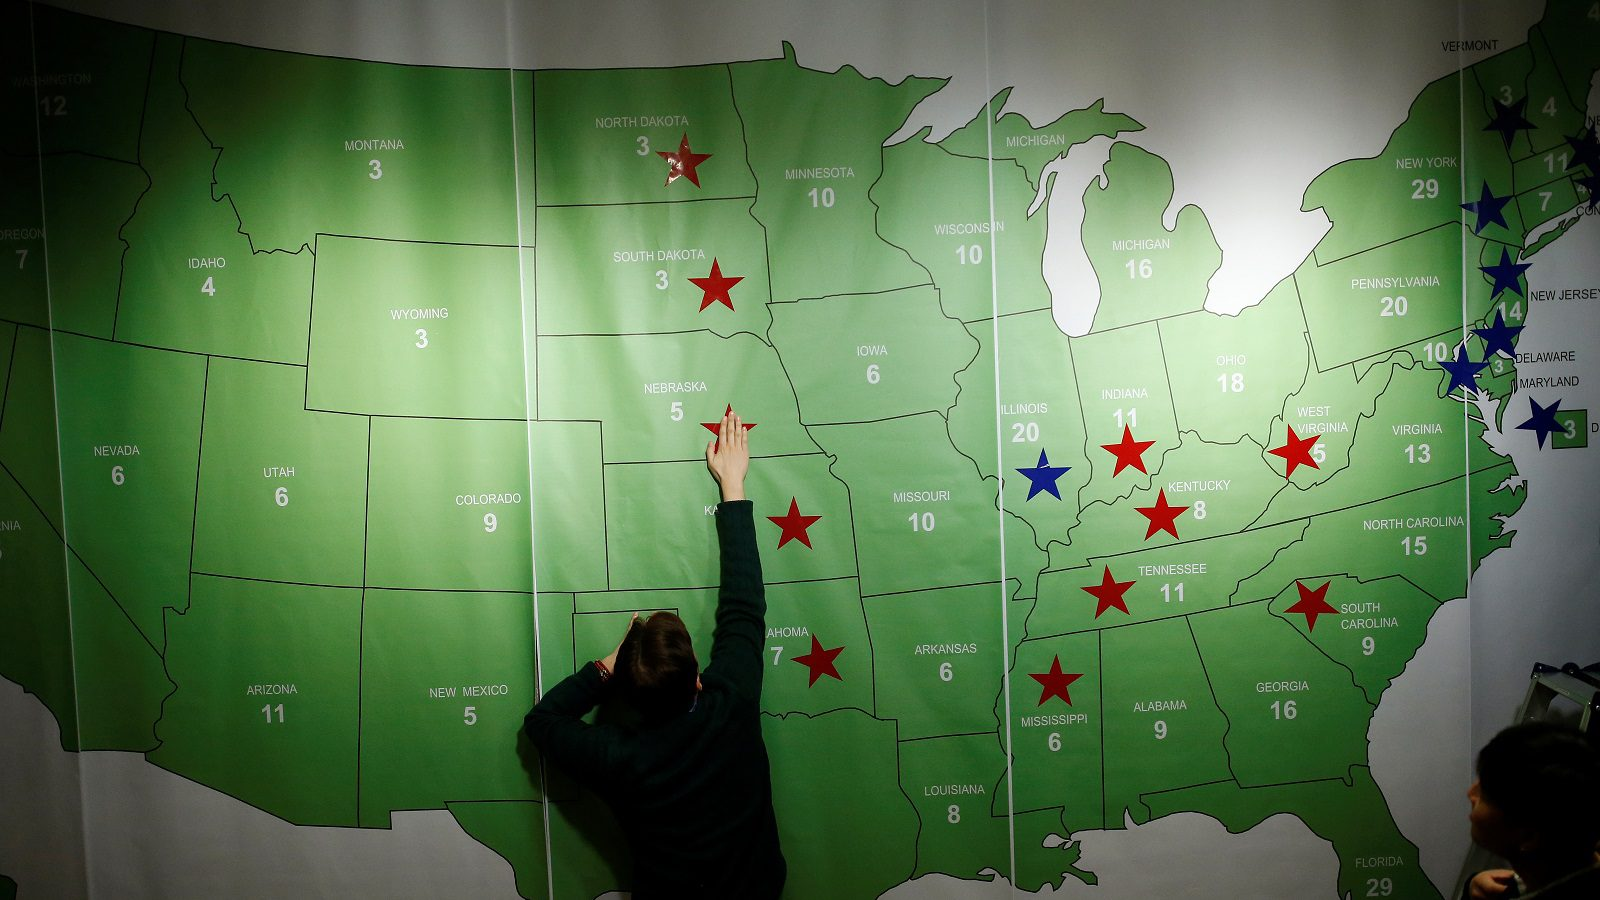 Republicans have manipulated state voting maps to ensure they win legislative seats even when they lose popular votes.